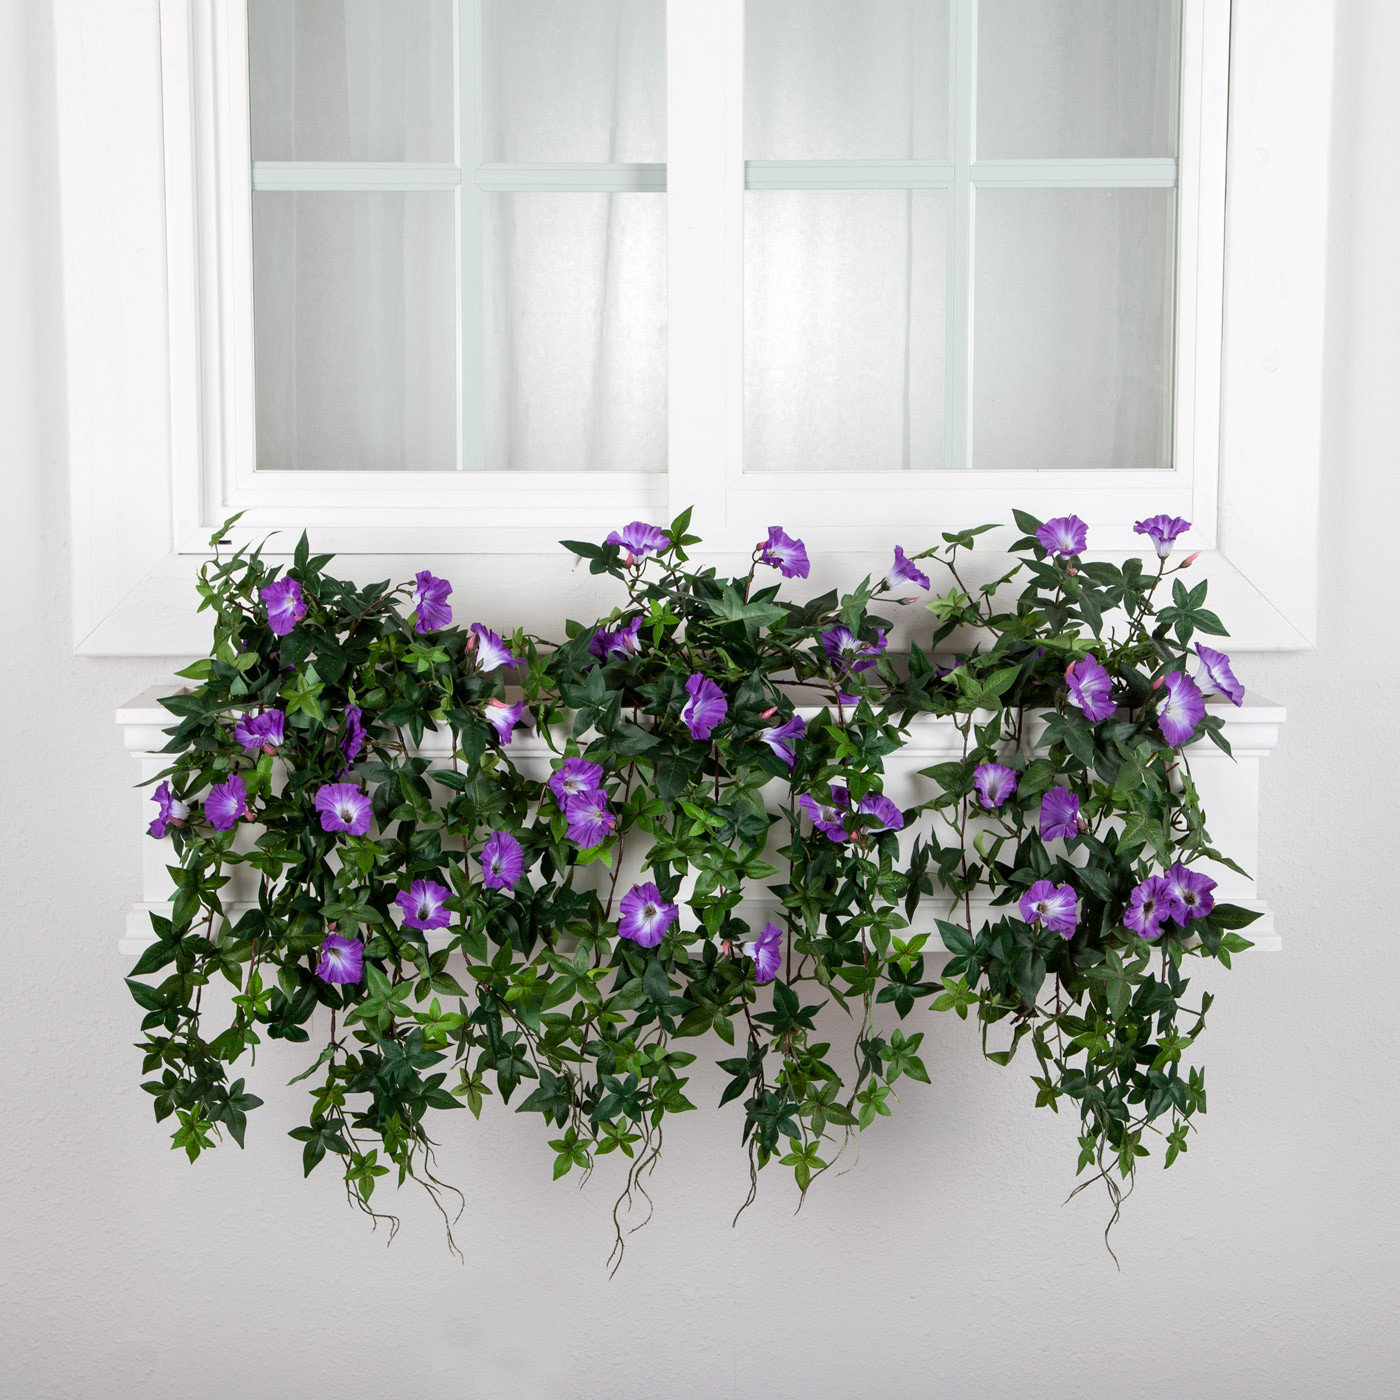 Artificial Morning Glory Flowers For Window Boxes Hooks